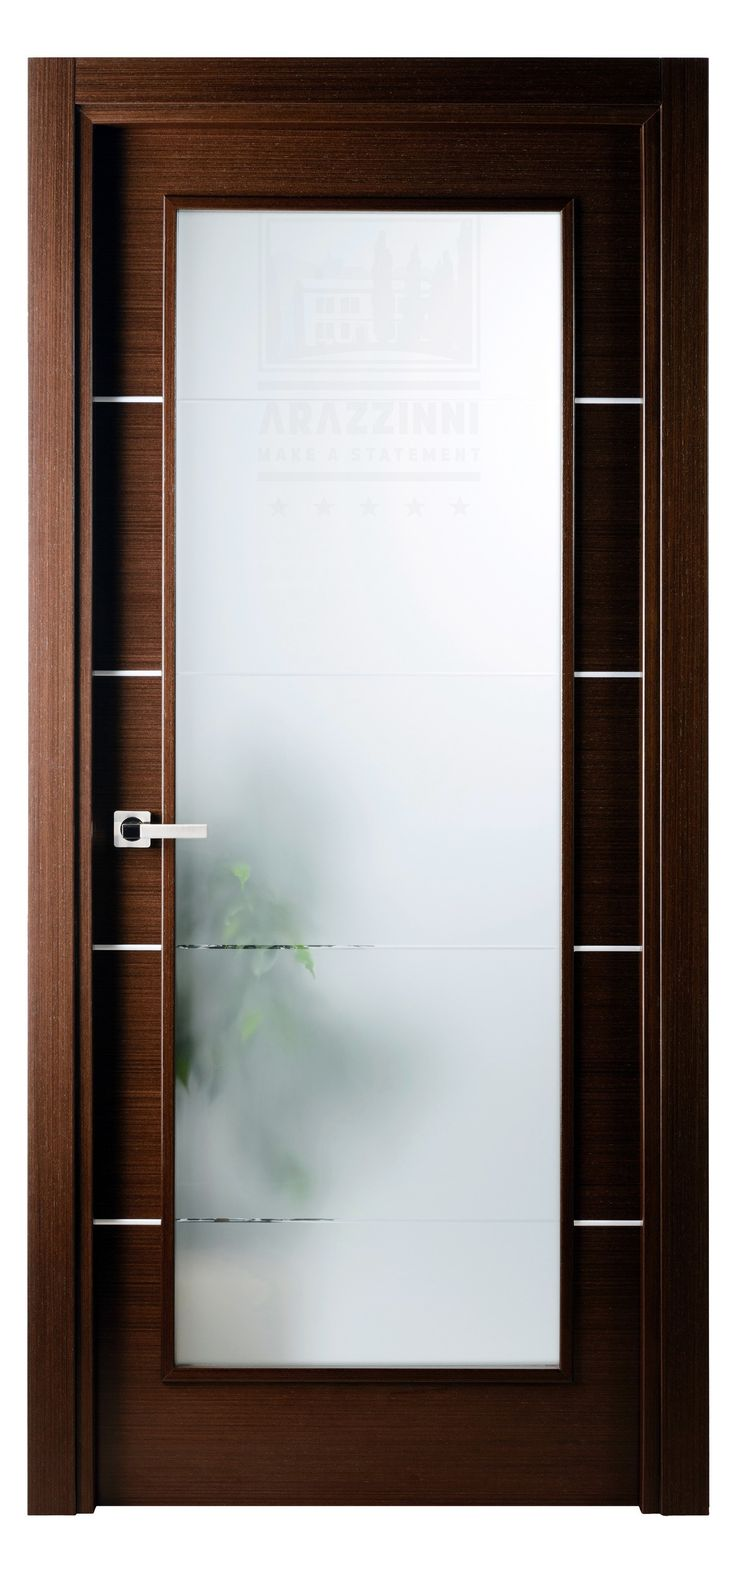 Single interior glass doors - Mia Vetro Interior Door In Wenge Finish With Frosted Glass